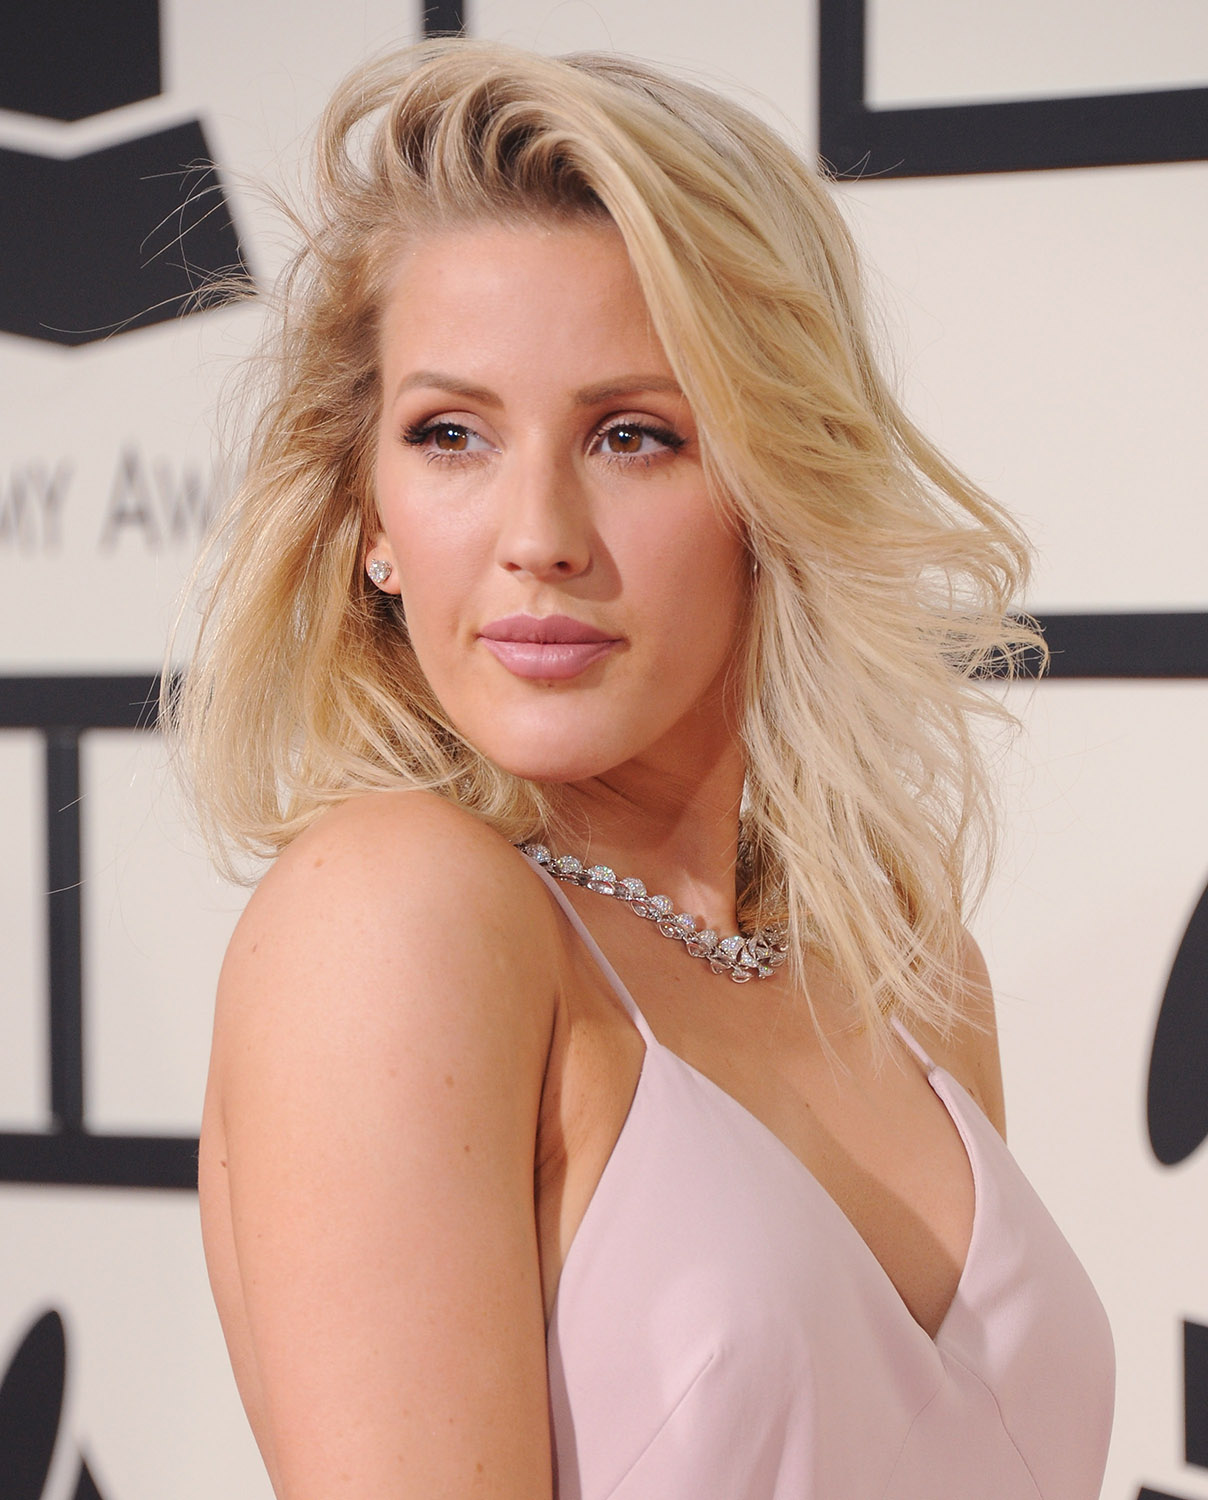 Ellie Goulding Hot & Sexy Bikini Images, Photos and Videos